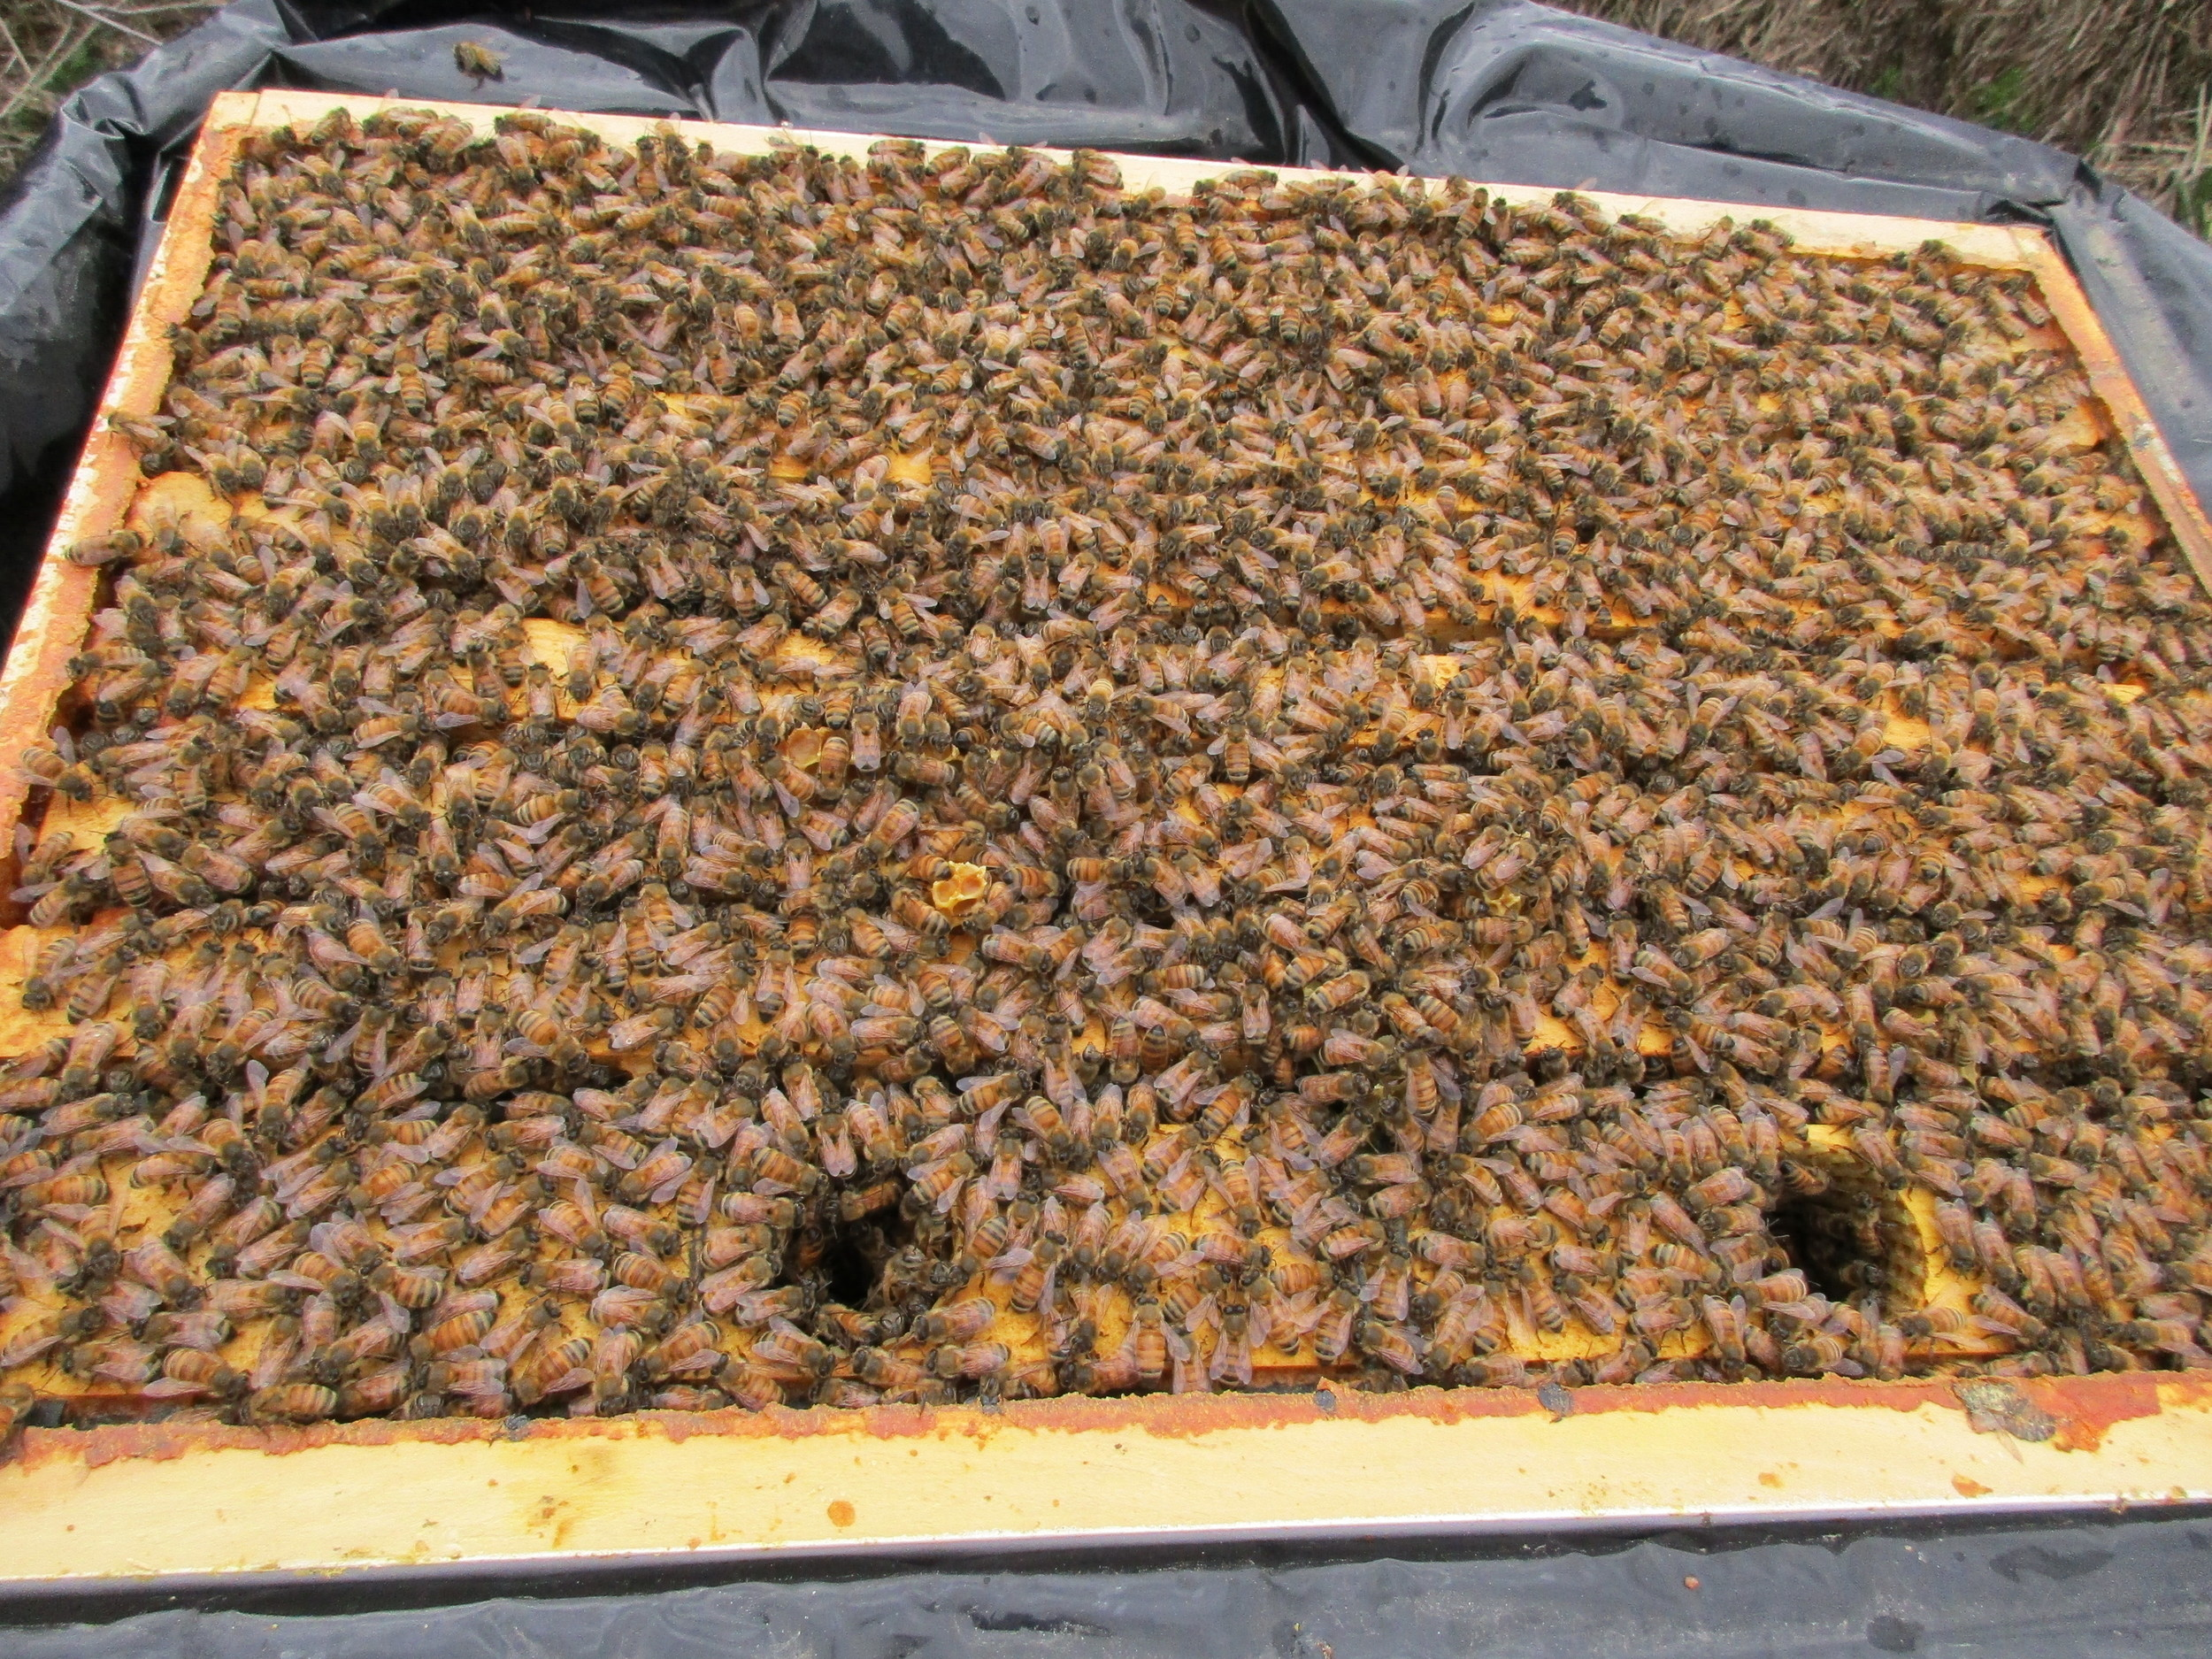 Fri April 8th. Wow! What a lot of bees!